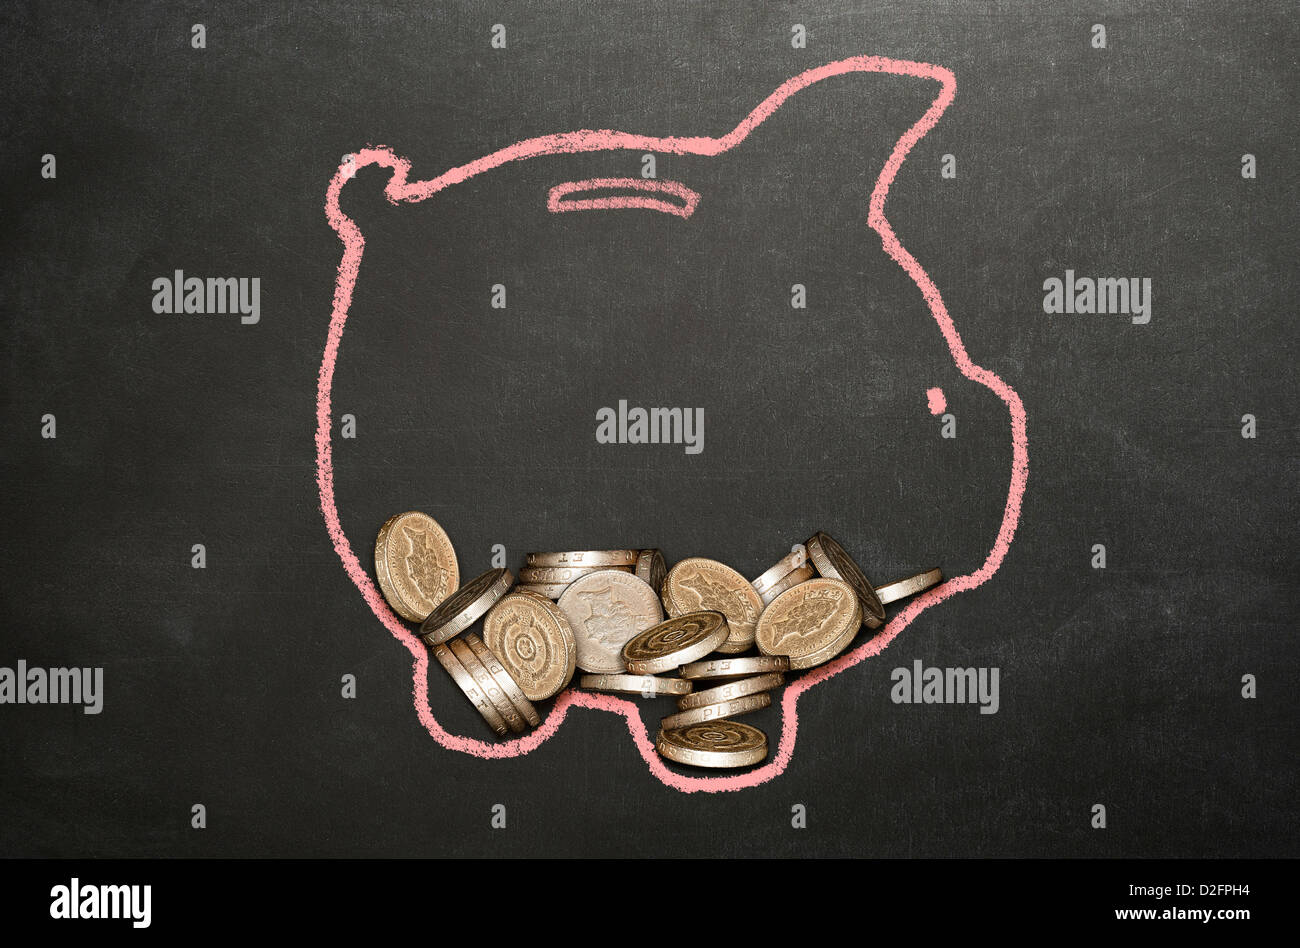 Money (sterling) coins in a piggy bank drawn on a blackboard - Stock Image